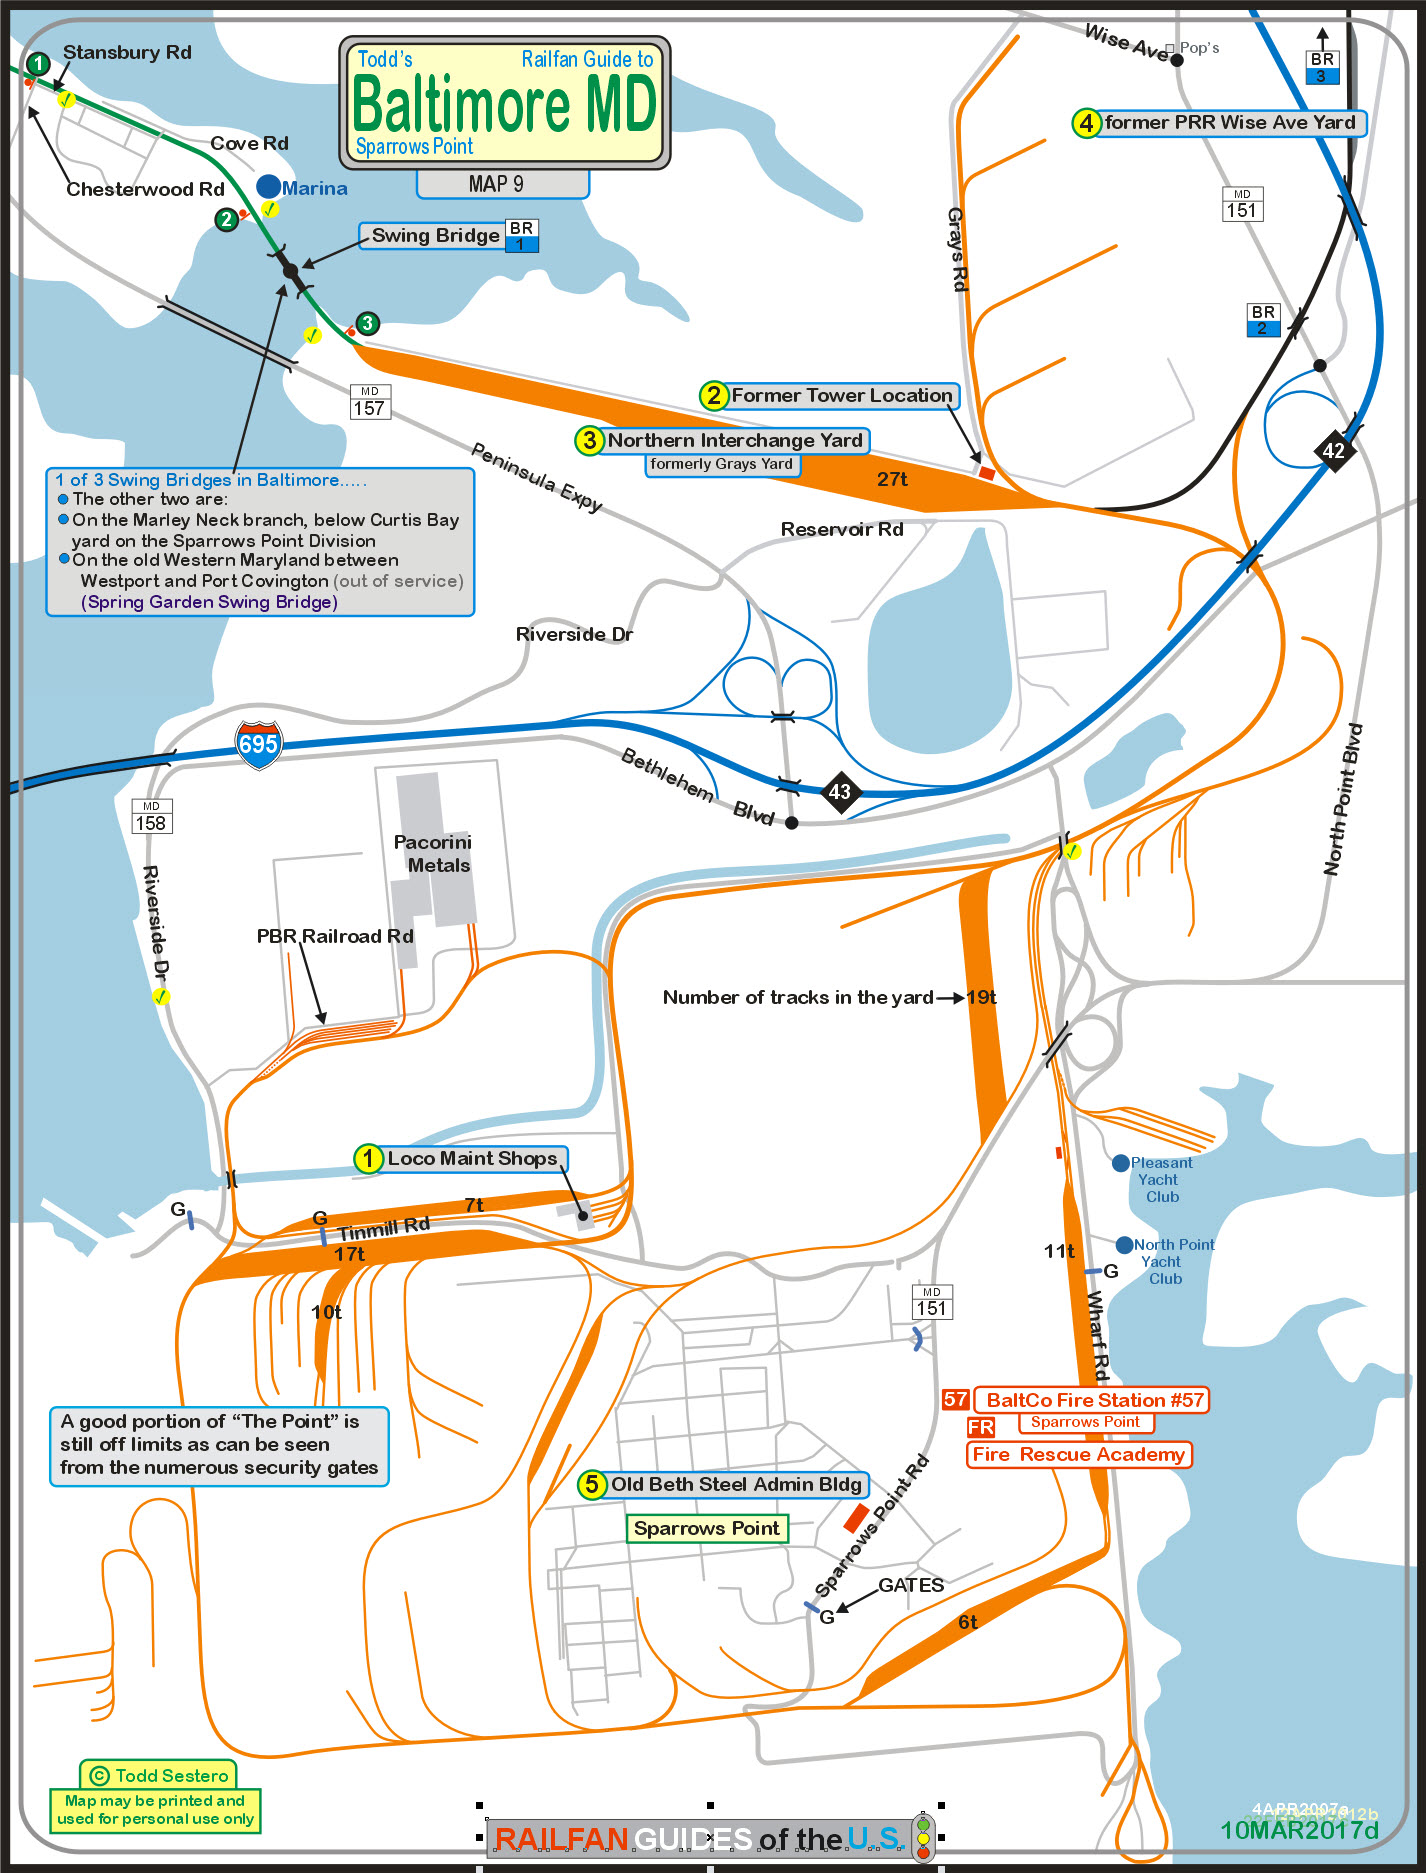 Baltimore Railfan Guide Map Of The SouthEastern Side Of Baltimore - Baltimore on us map